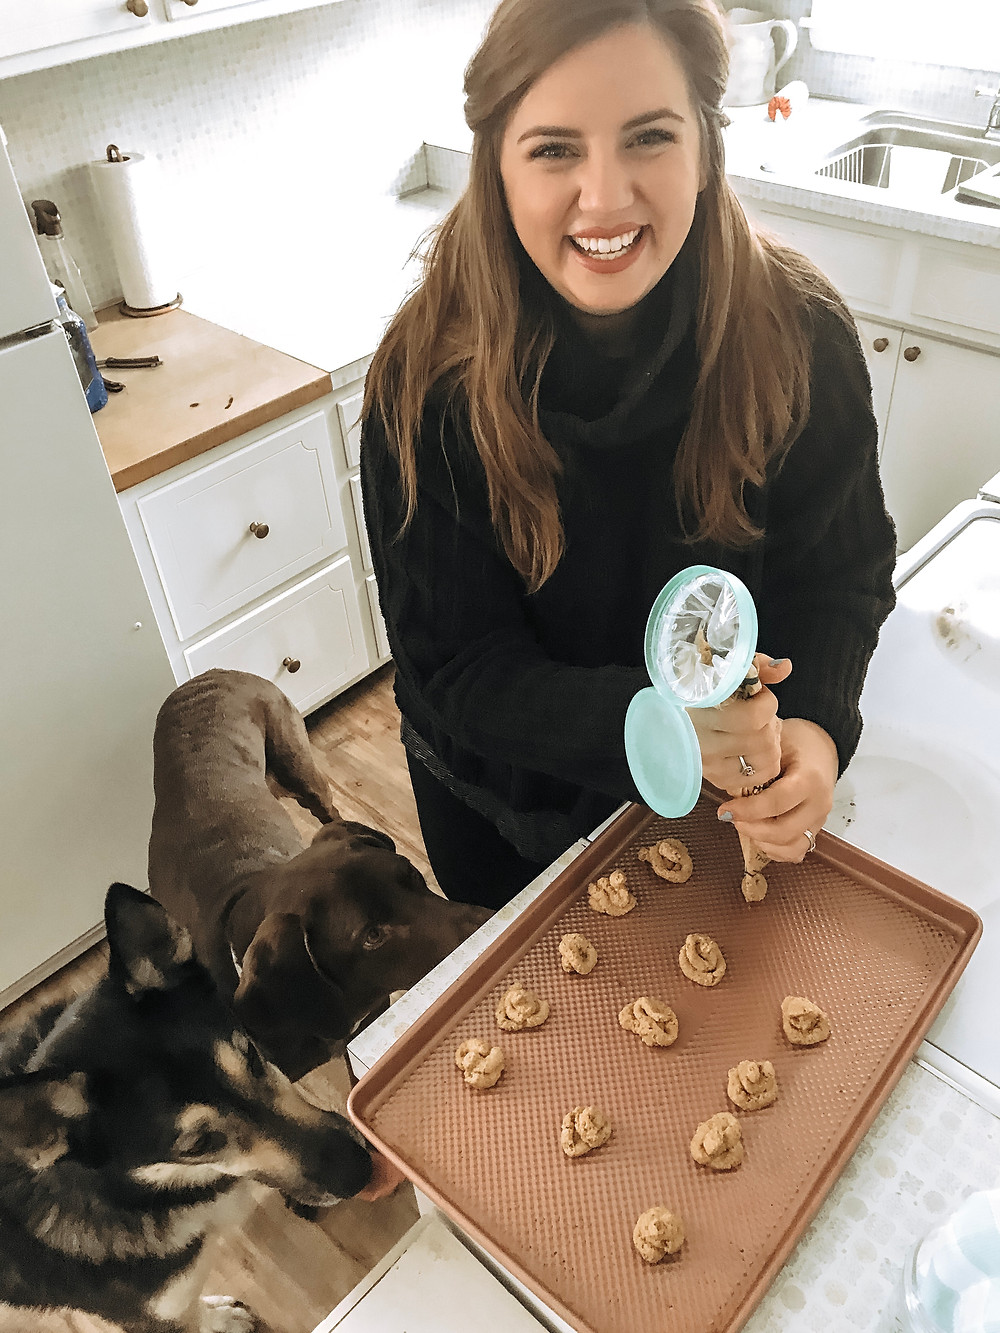 Bake at home dog treats!